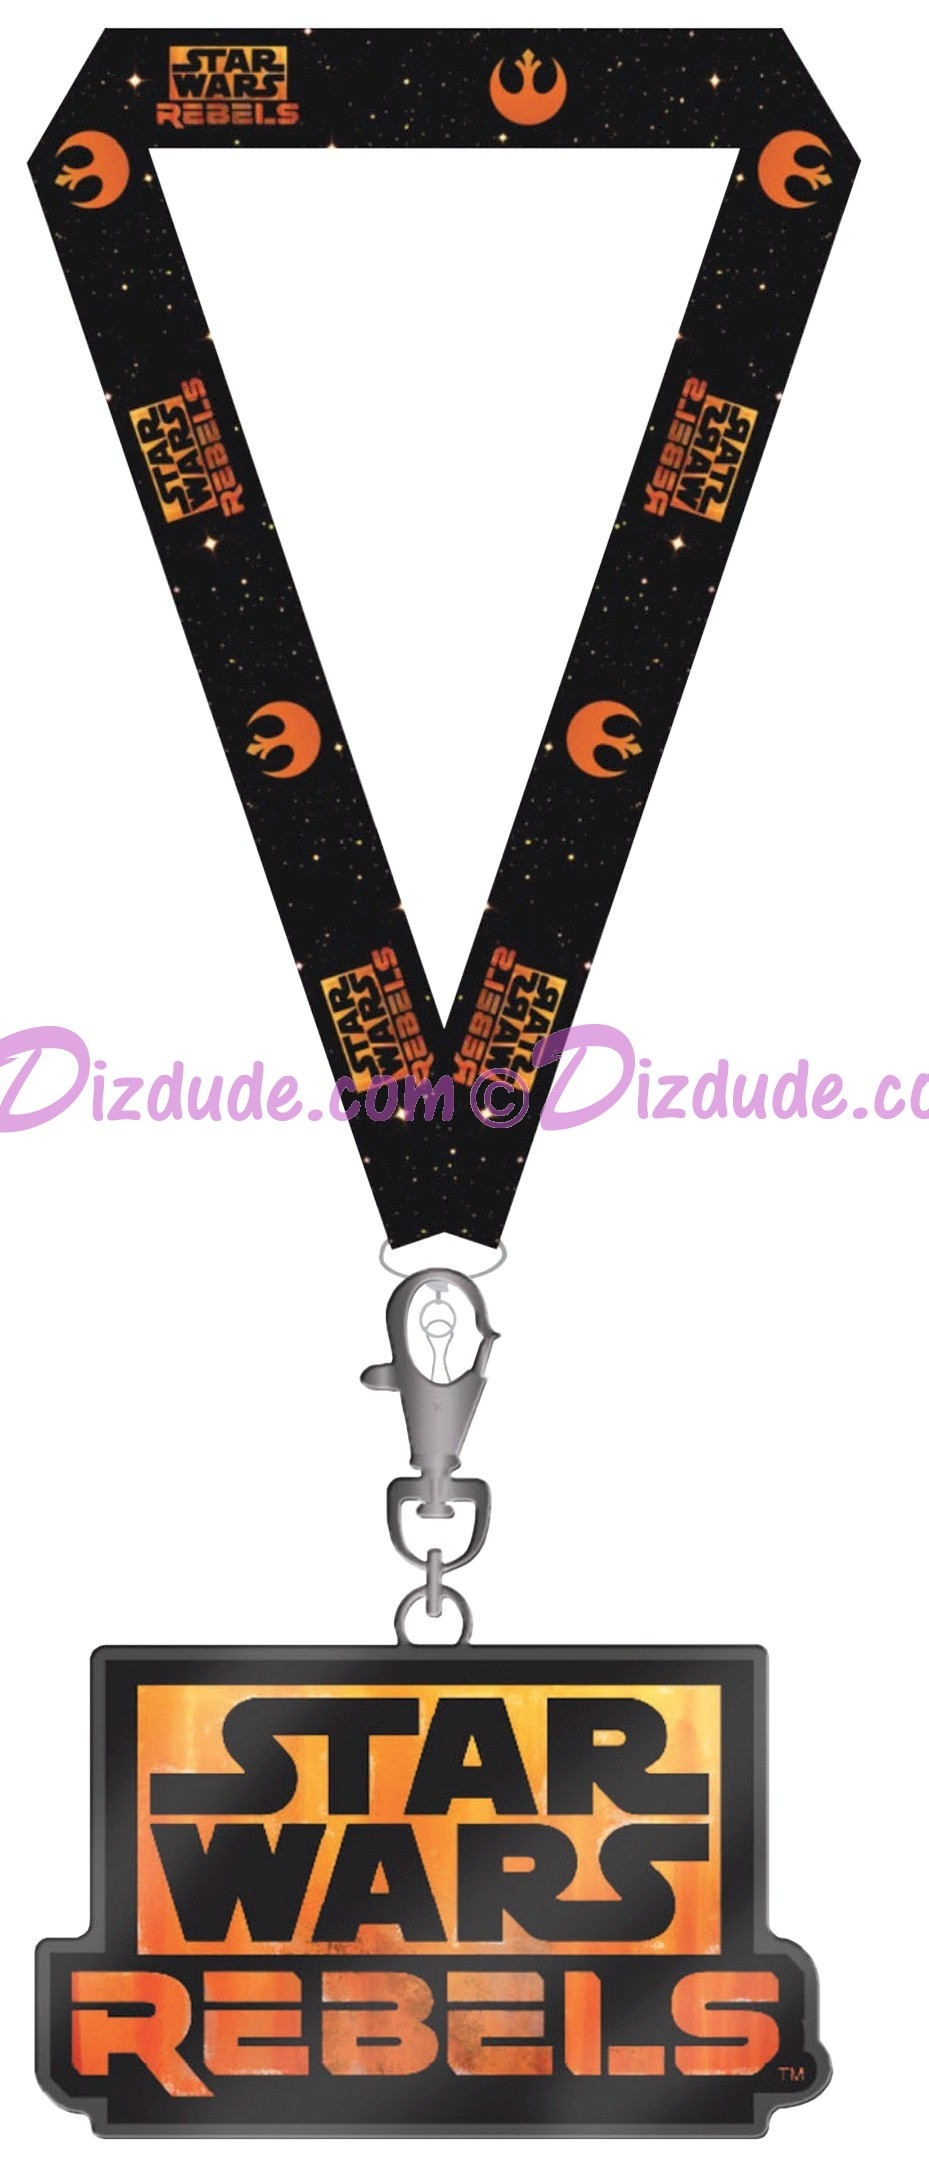 Star Wars REBELS Recruitment Event Attendee Lanyard and Medal Limited Edition - Disney Star Wars Weekends 2014 © Dizdude.com